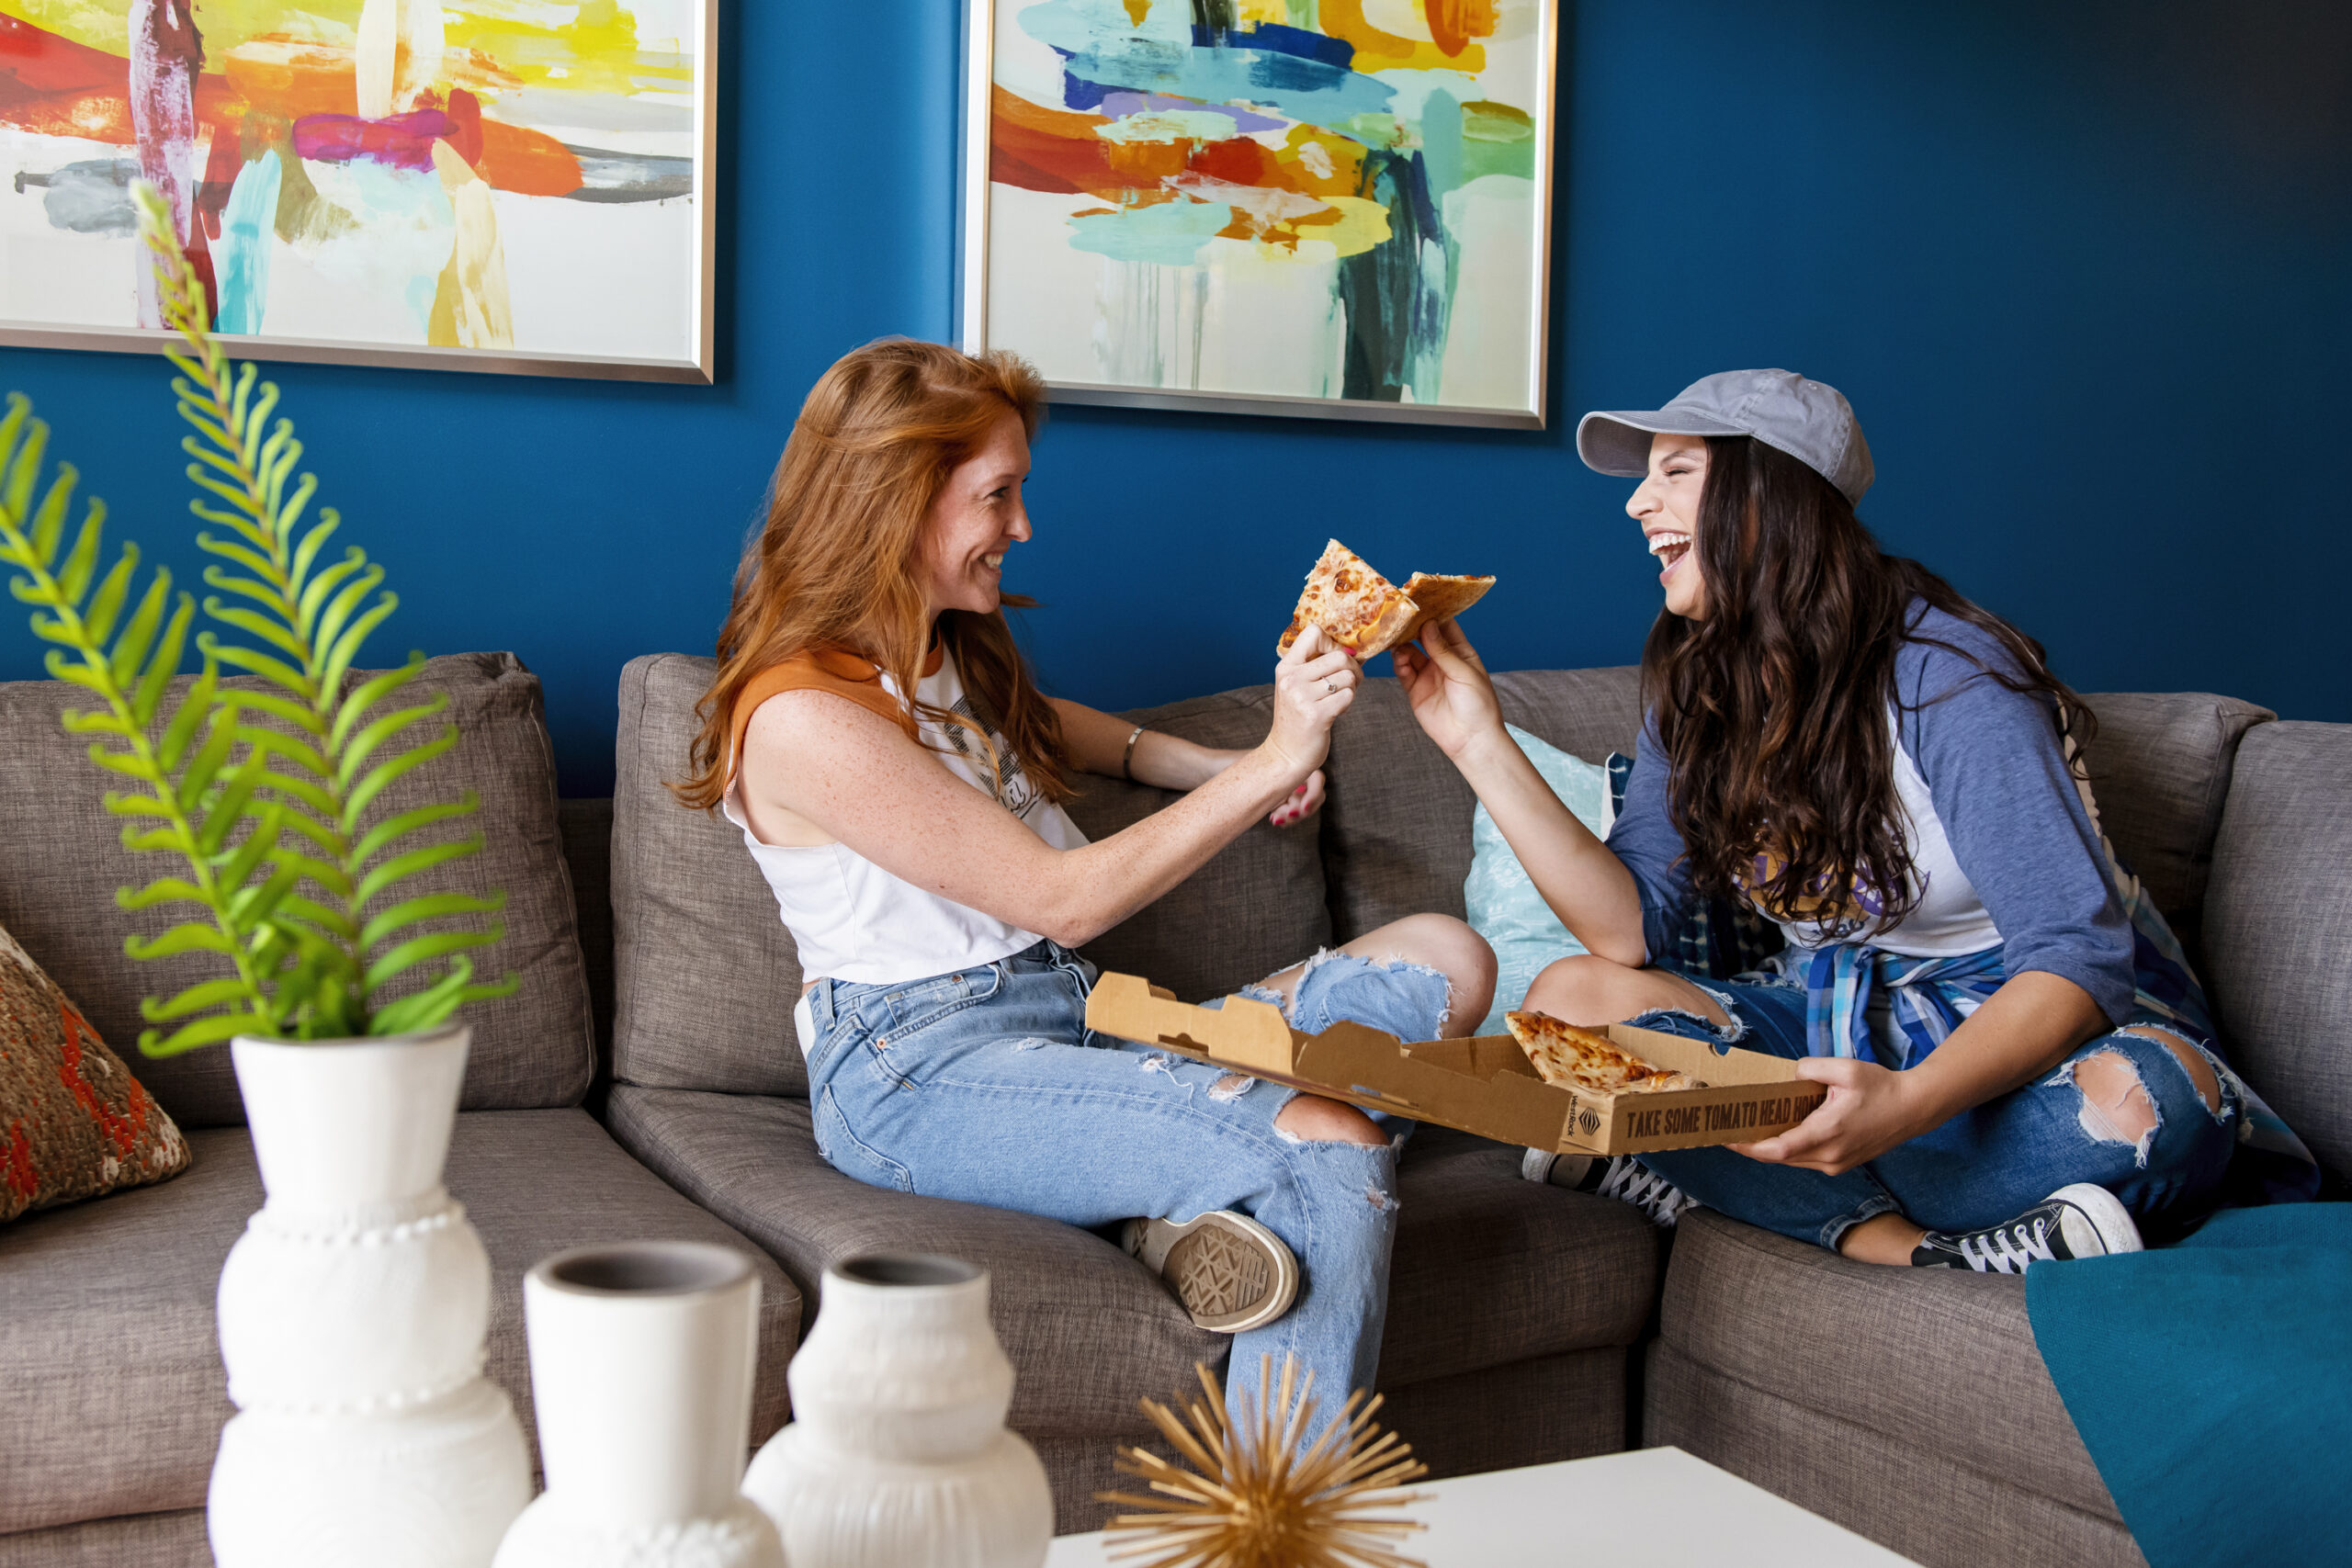 girls eating pizza on couch evolve blog